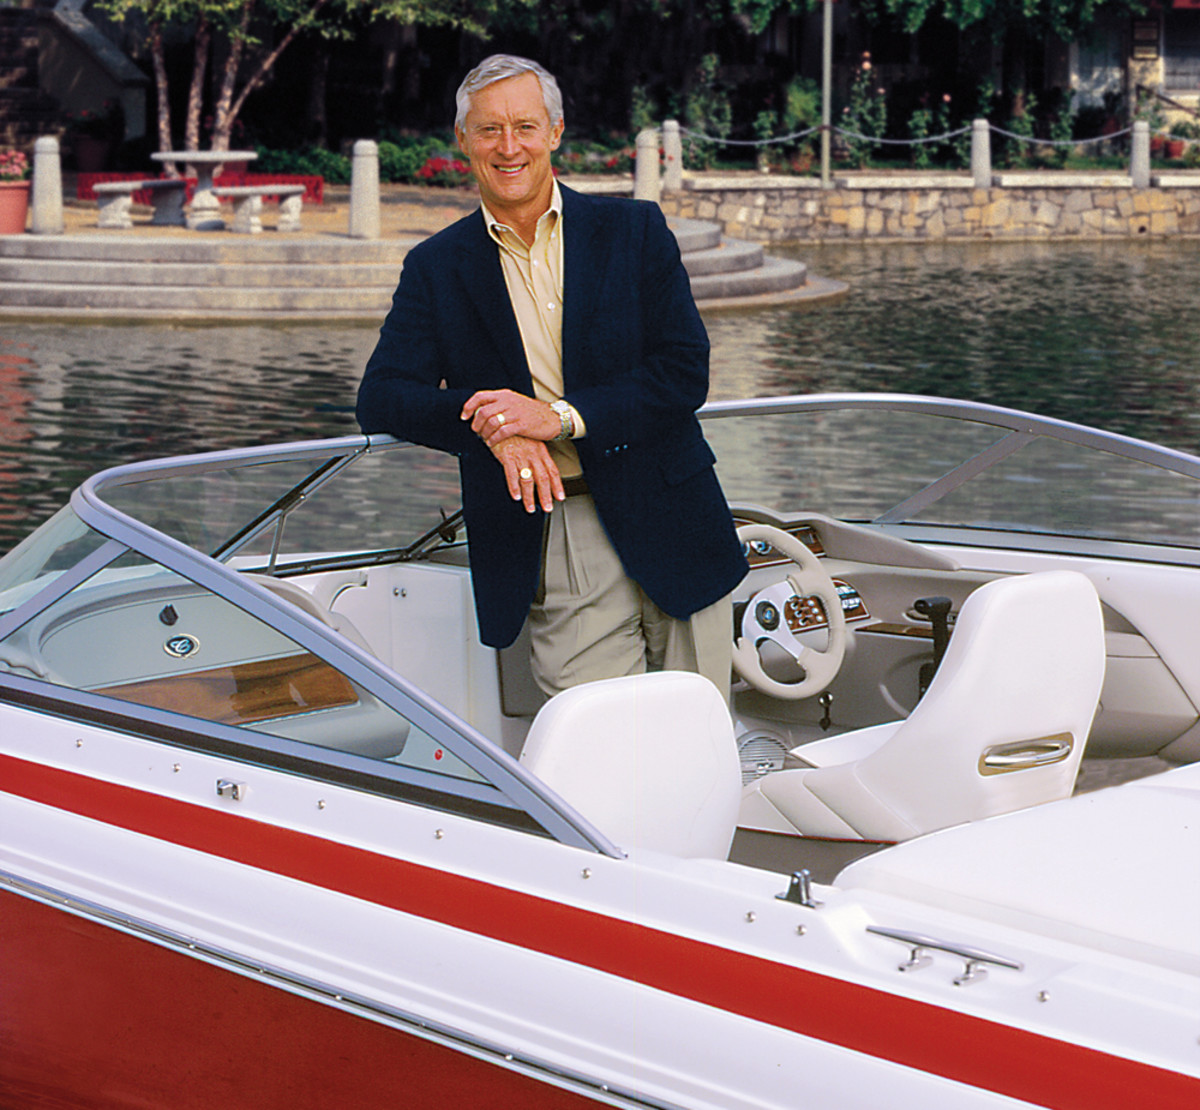 Pack St. Clair launched Cobalt Boats in 1968 in an unlikely locale: landlocked rural Kansas.